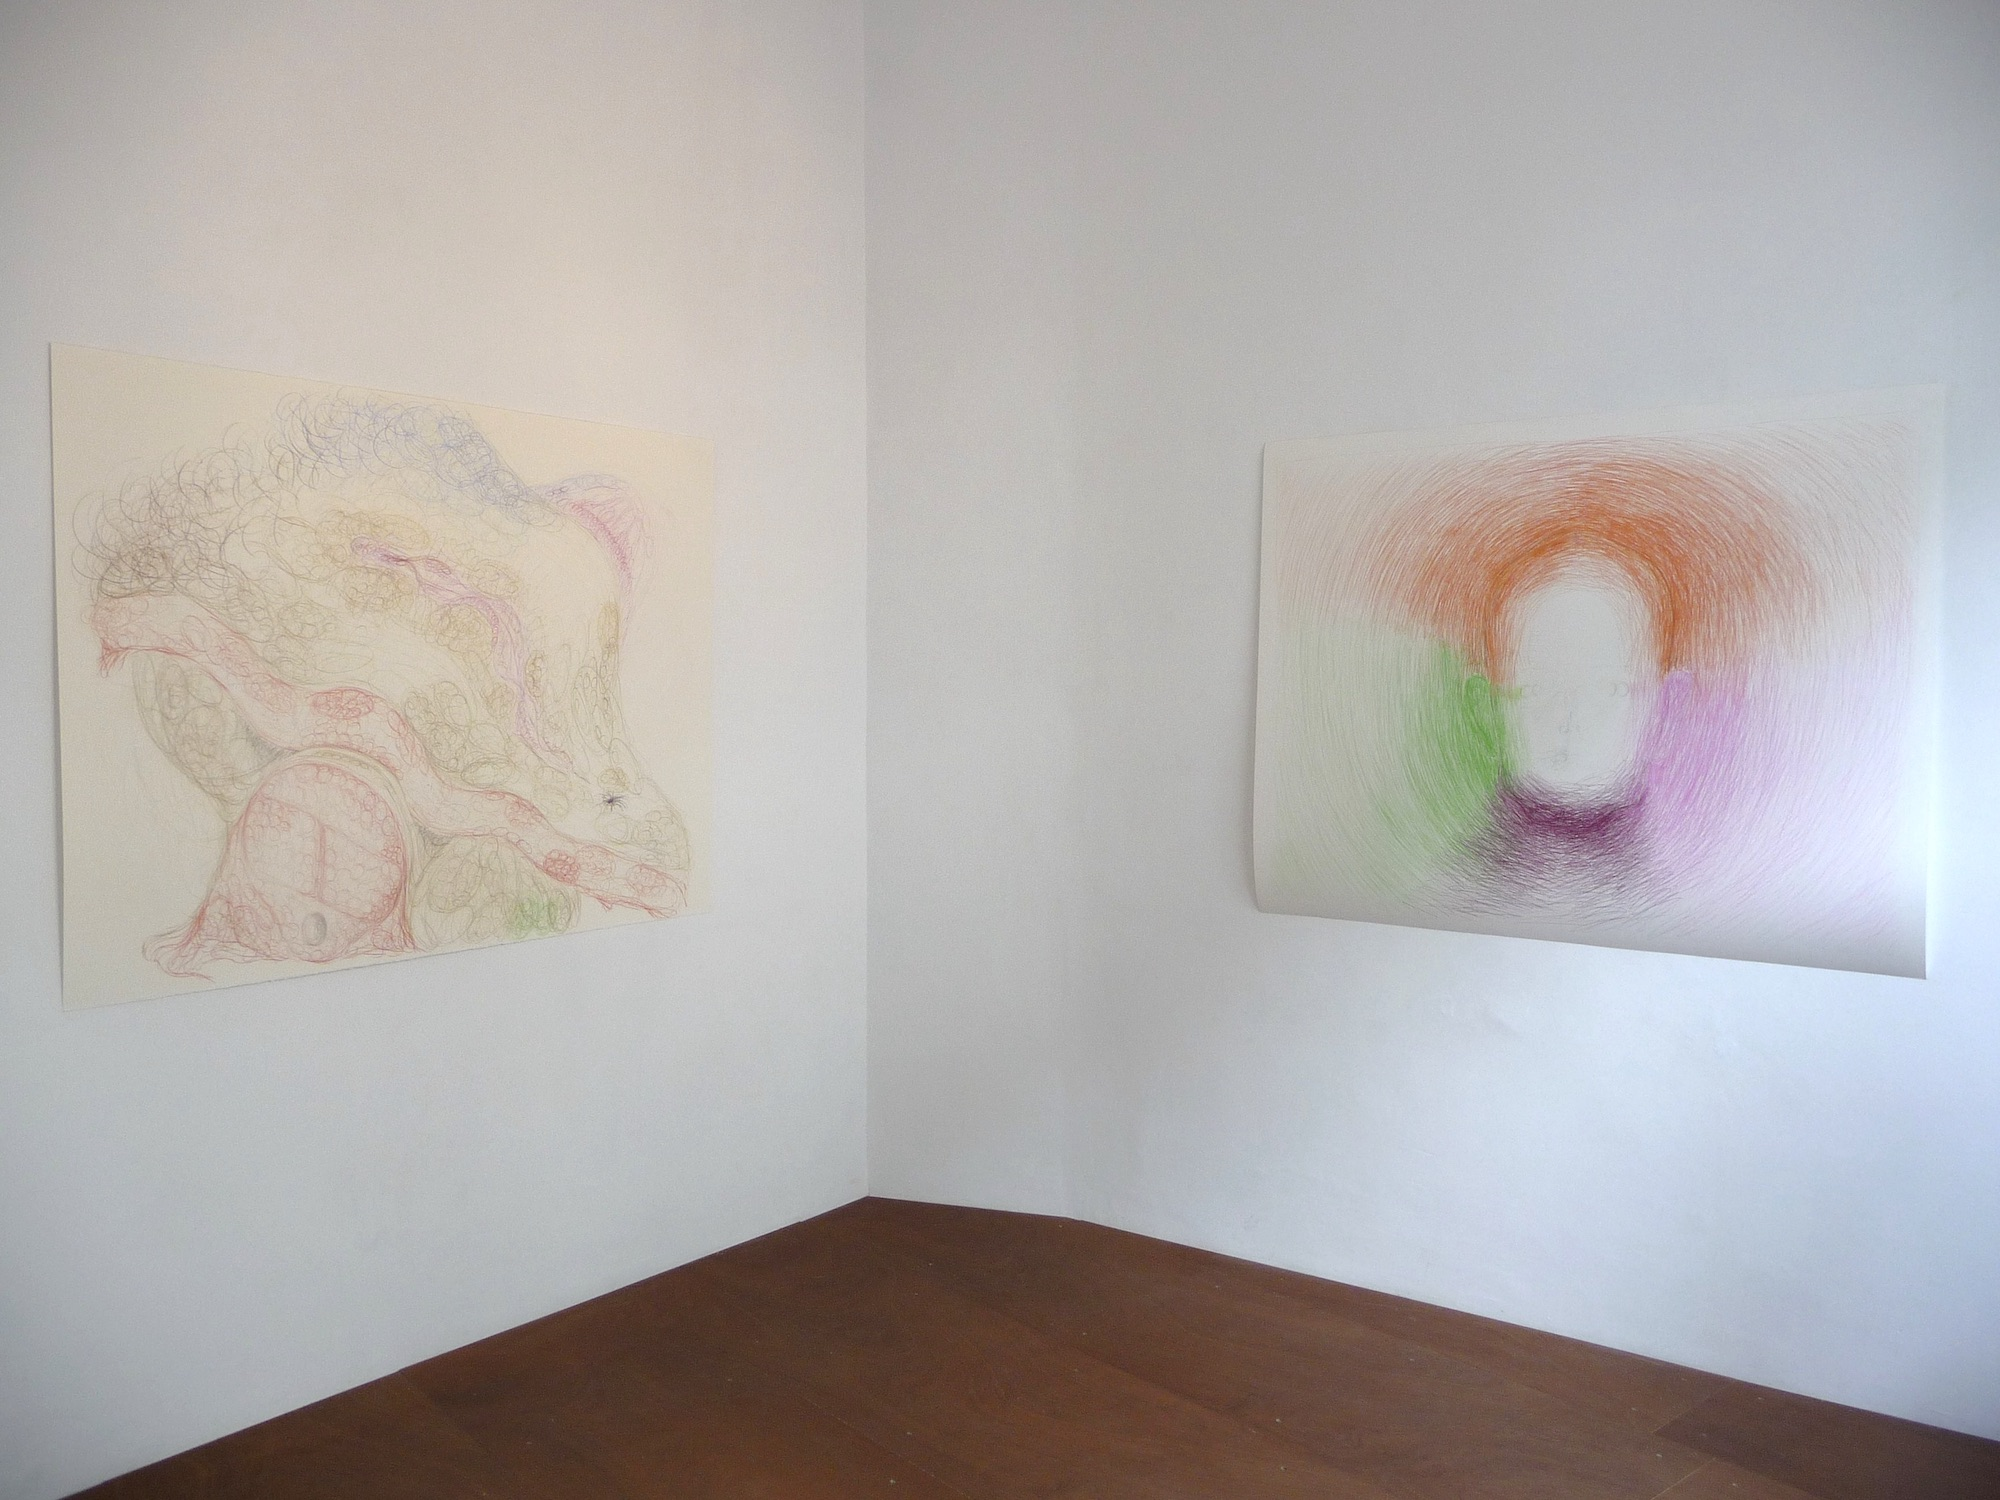 Overview Wet Towel exhibition. Spaceburo. 2015. Left: Coitus. 120 x 160 cm. Coloured pencil on paper. 2011. Right: Head. Coloured pencil on paper. 120 x 150 cm. 2015.